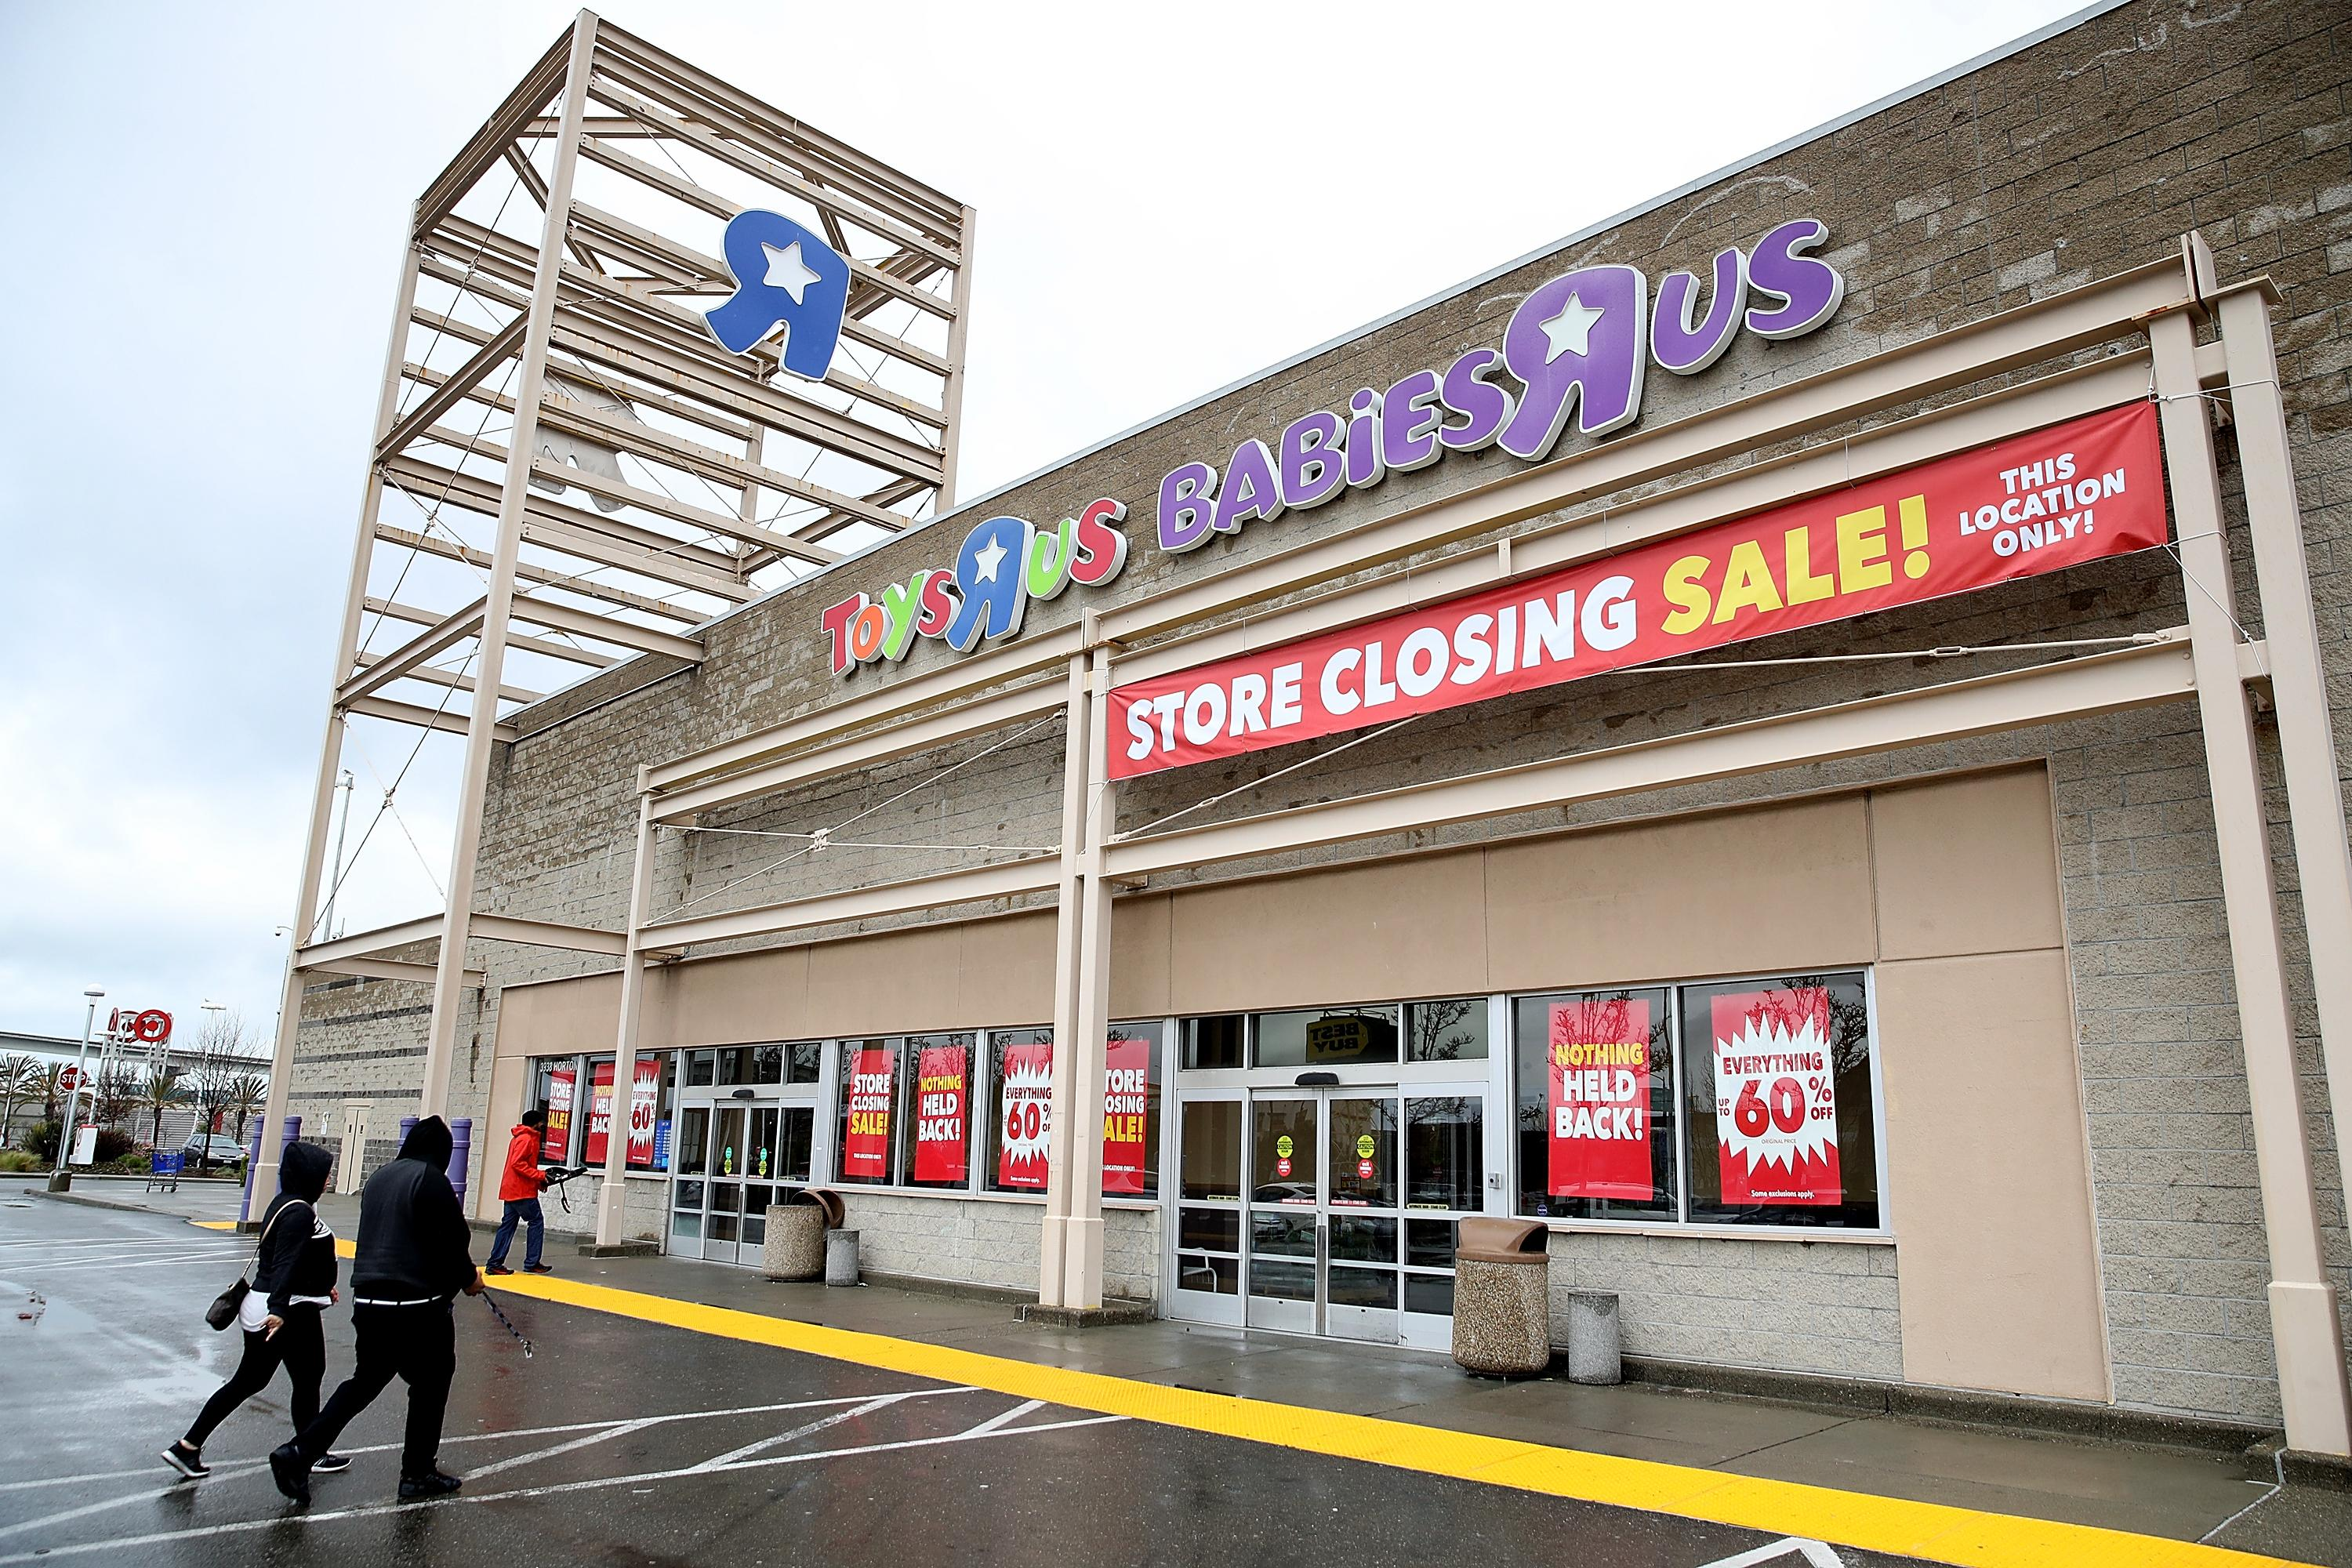 Toys R Us employees in Florence faced with uncertainty